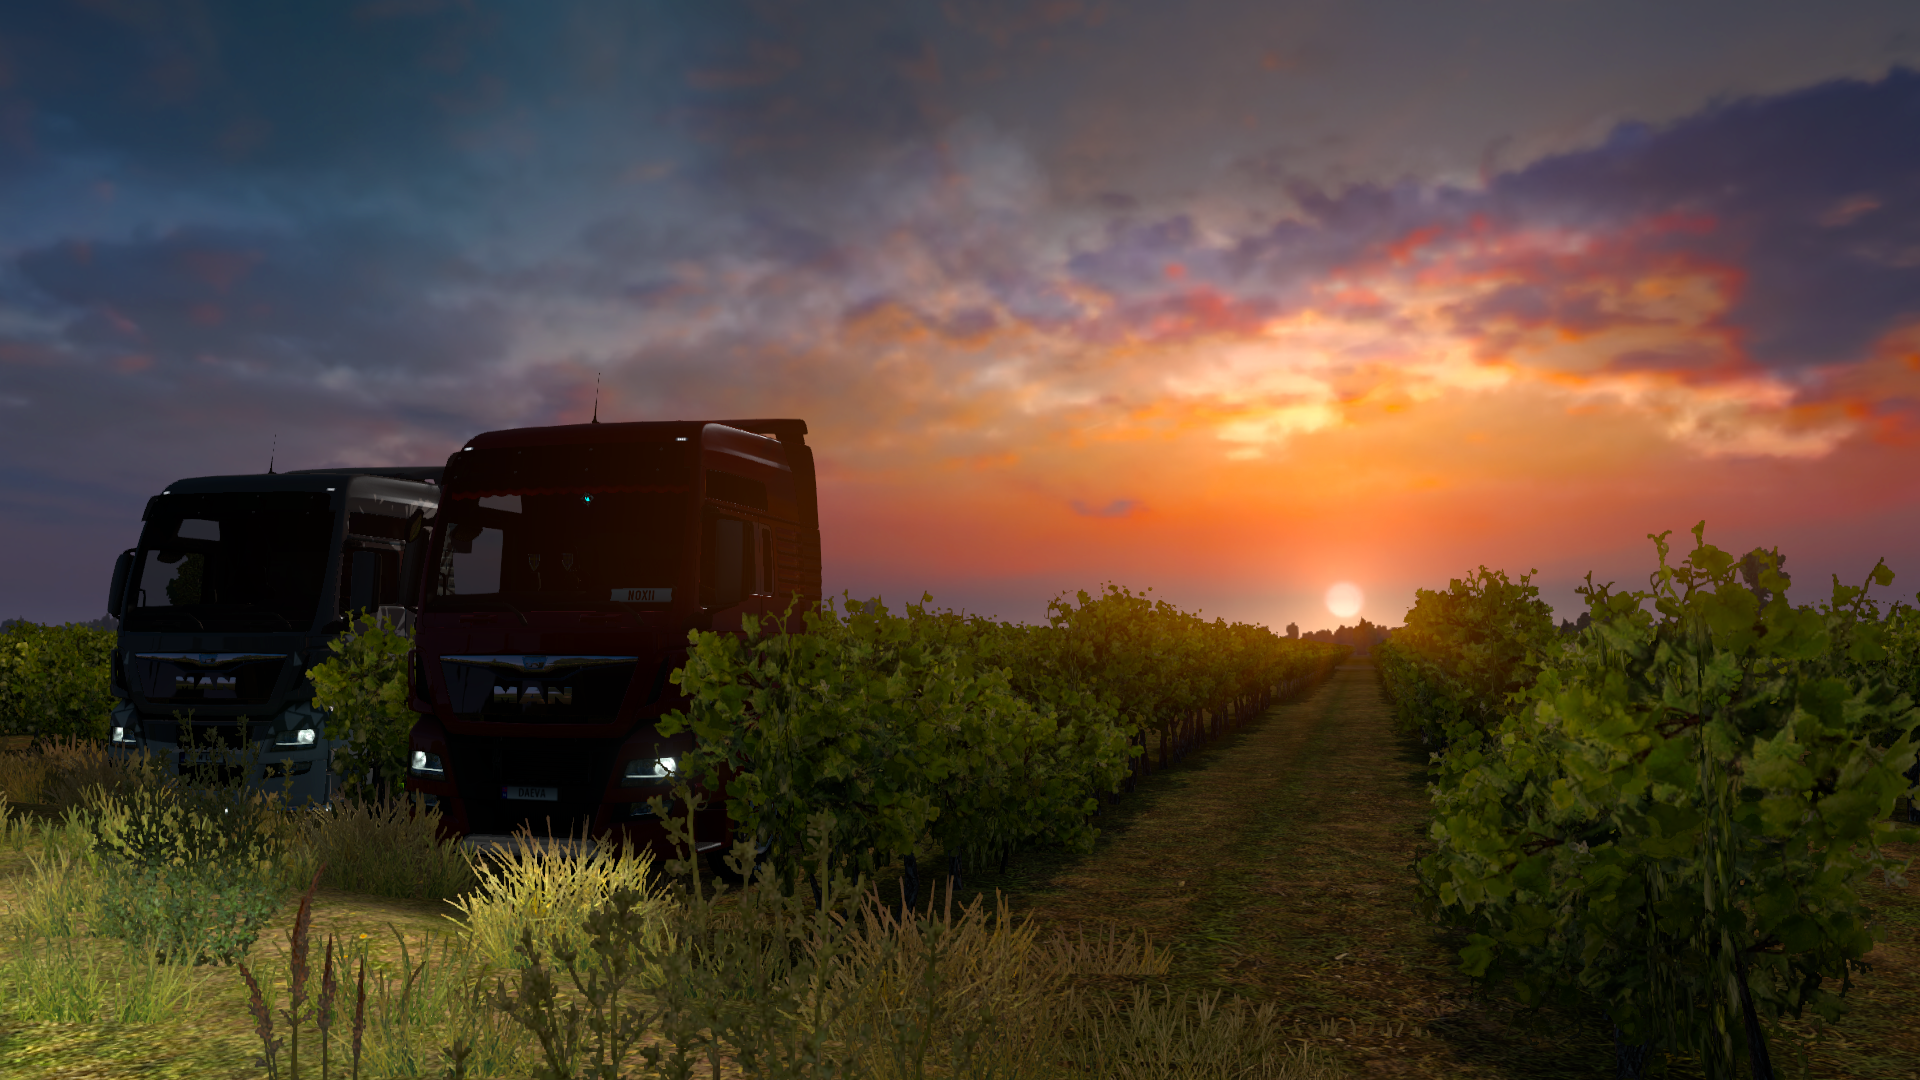 ets2_20190210_034144_00.png